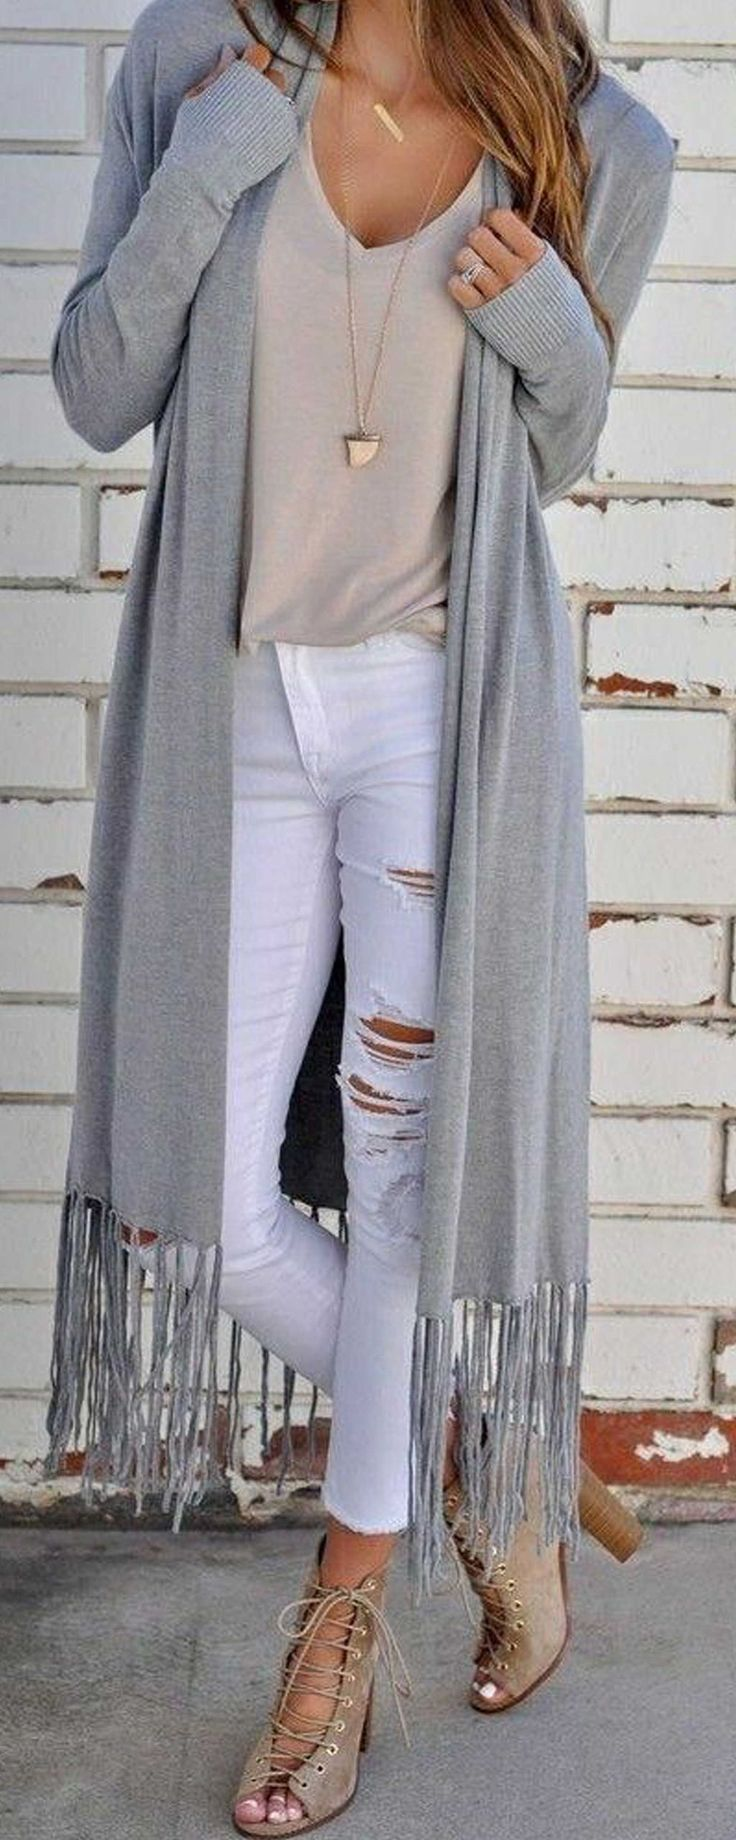 Awesome 57 Casual Winter Outfits Ideas With Long Cardigans. More at http://trendwear4you.com/2018/01/04/57-casual-winter-outfits-ideas-long-cardigans/ #womenclotheswinter